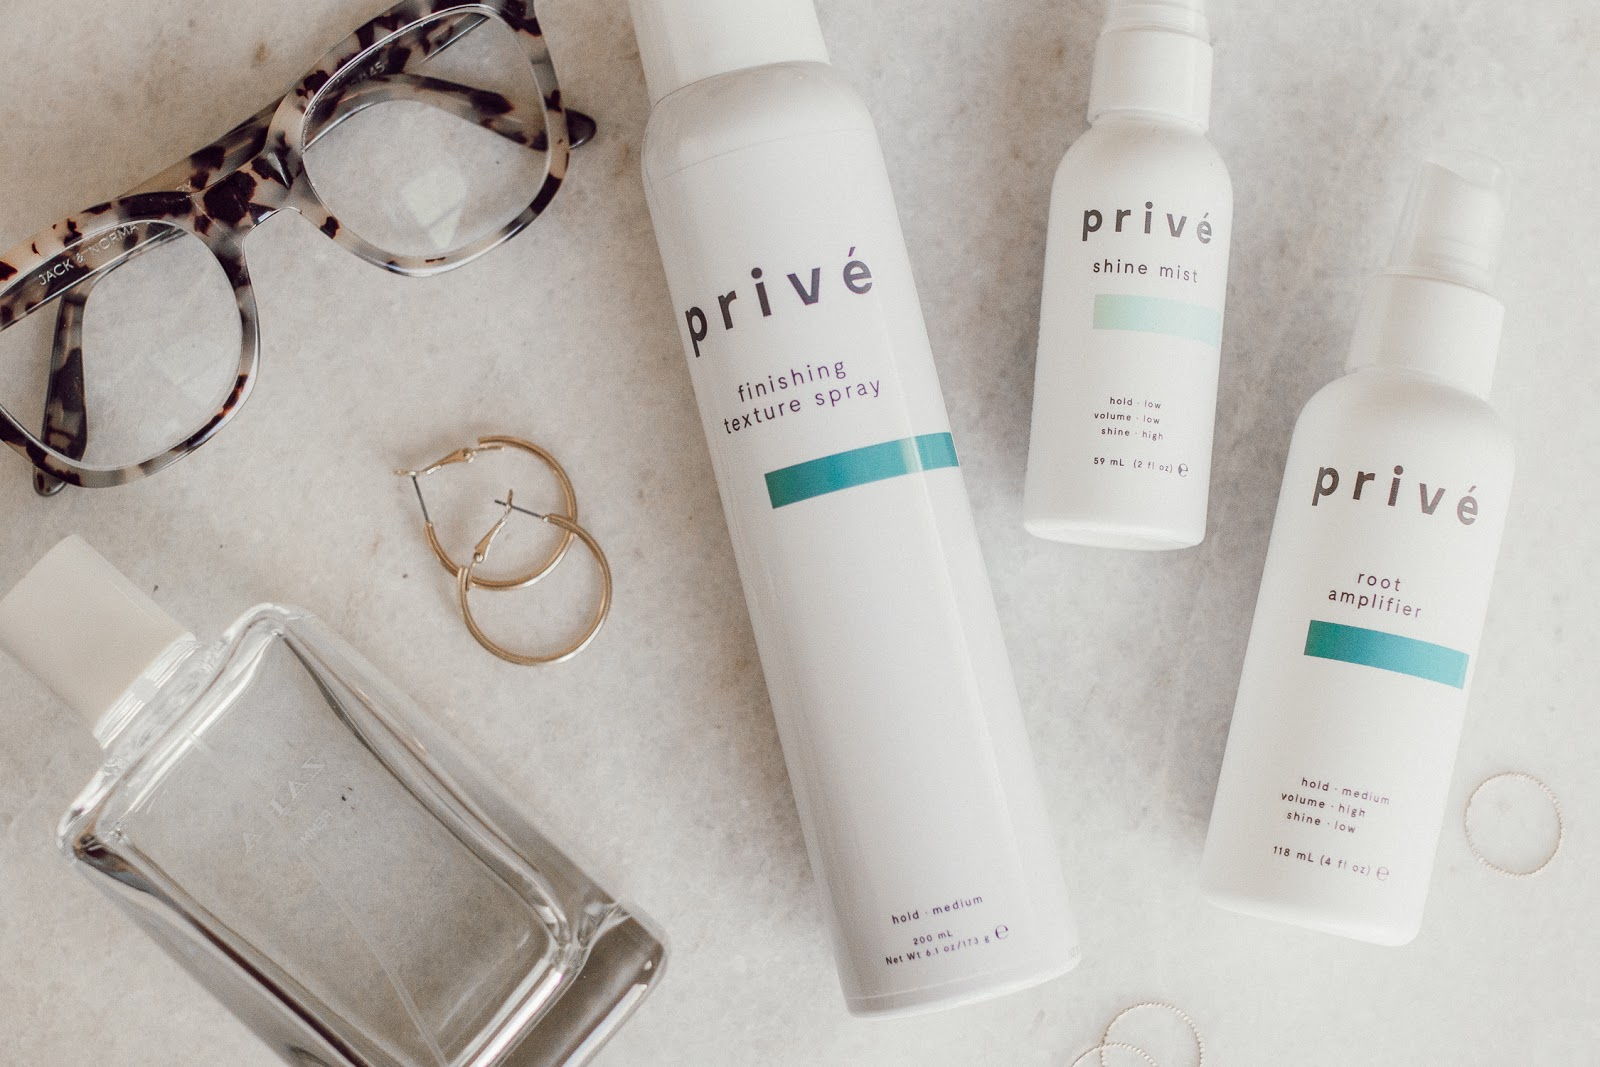 Prive hair products